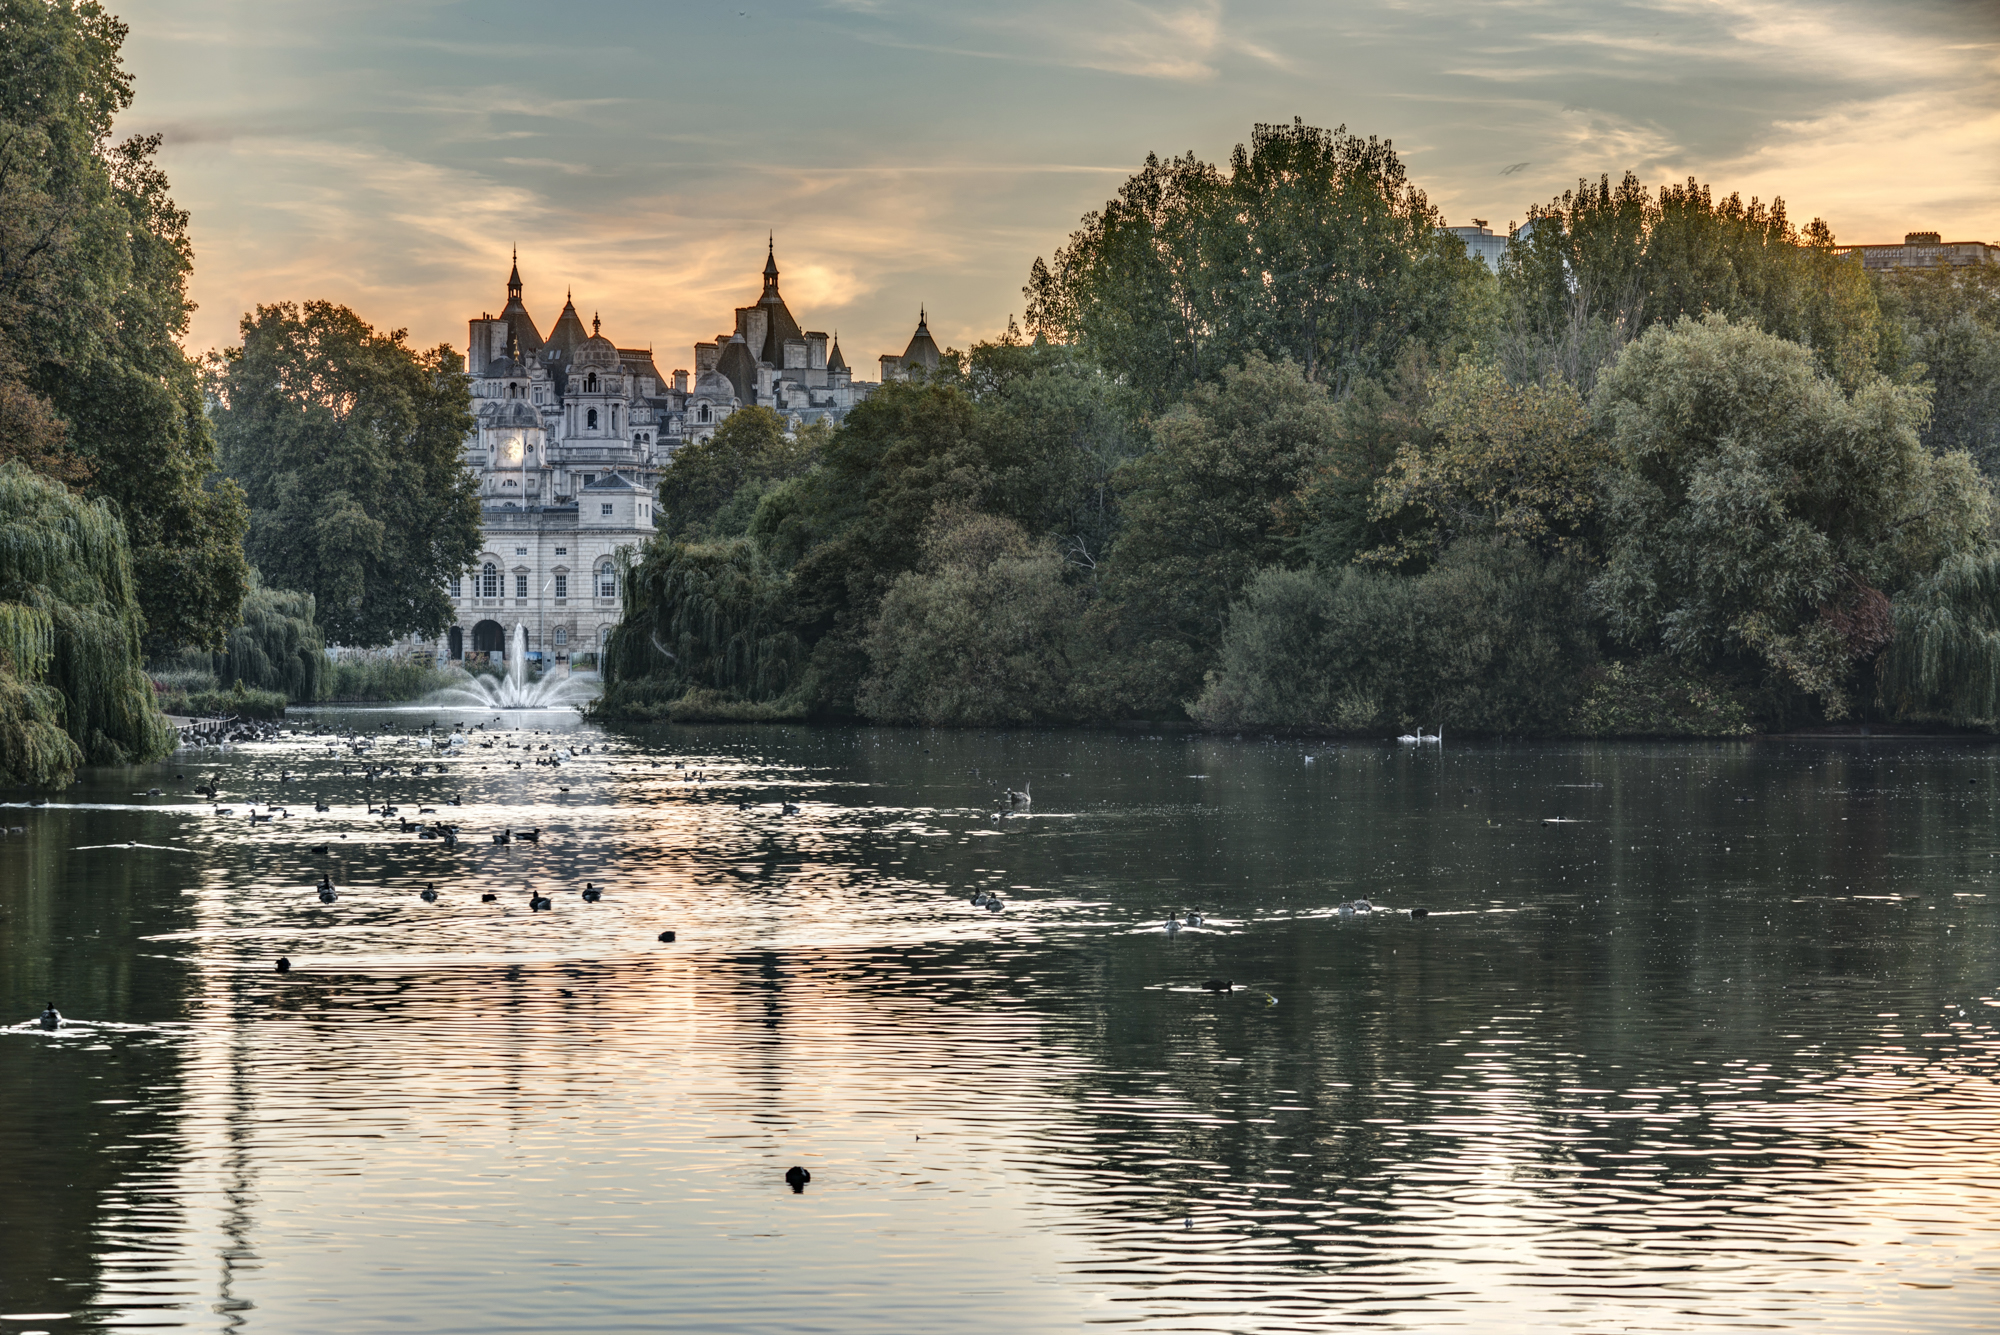 View of St James's Park